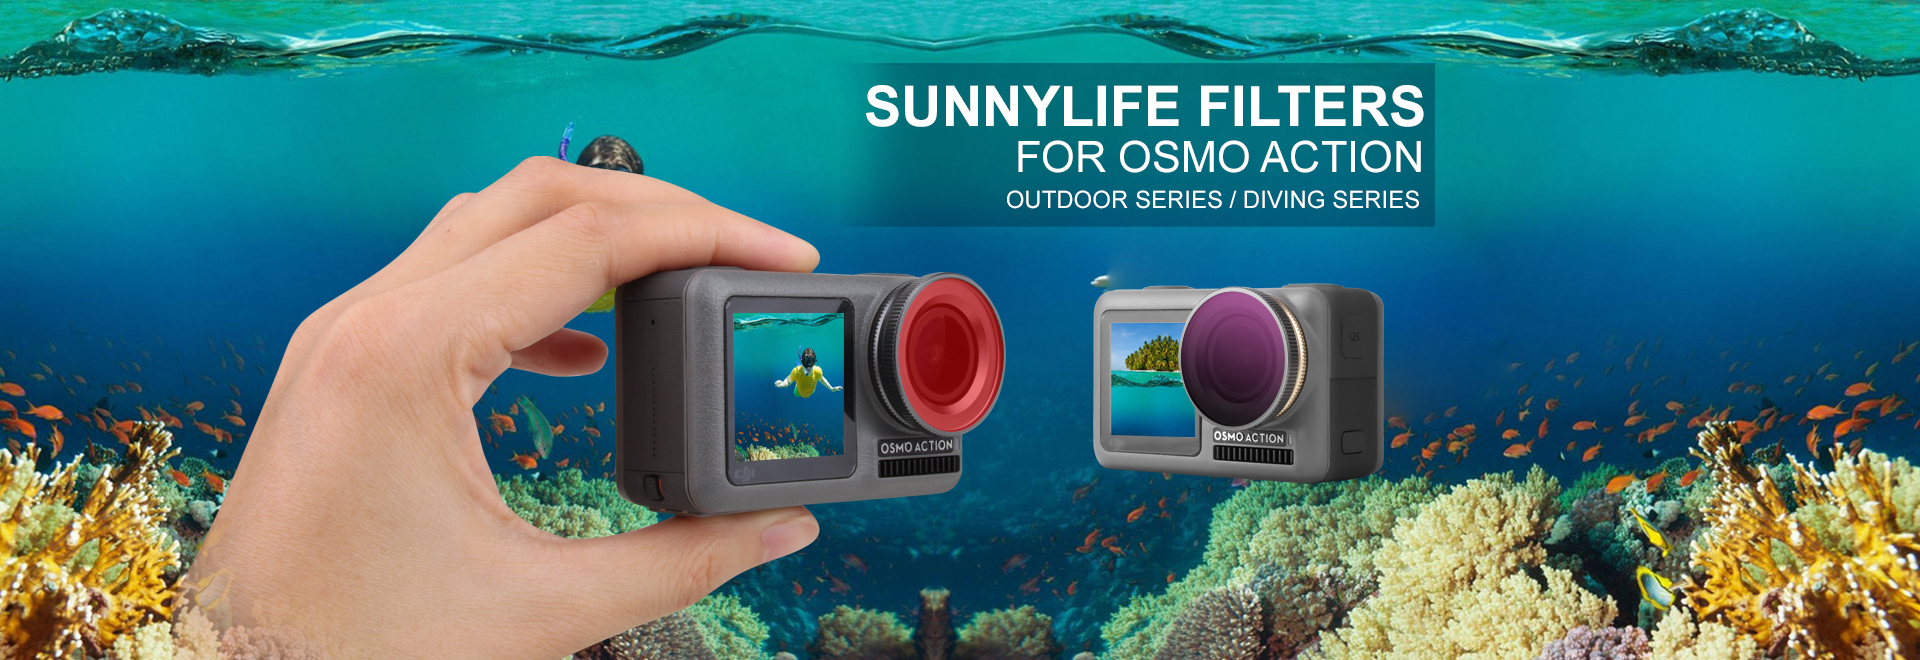 Lens Filter Series for OSMO ACTION